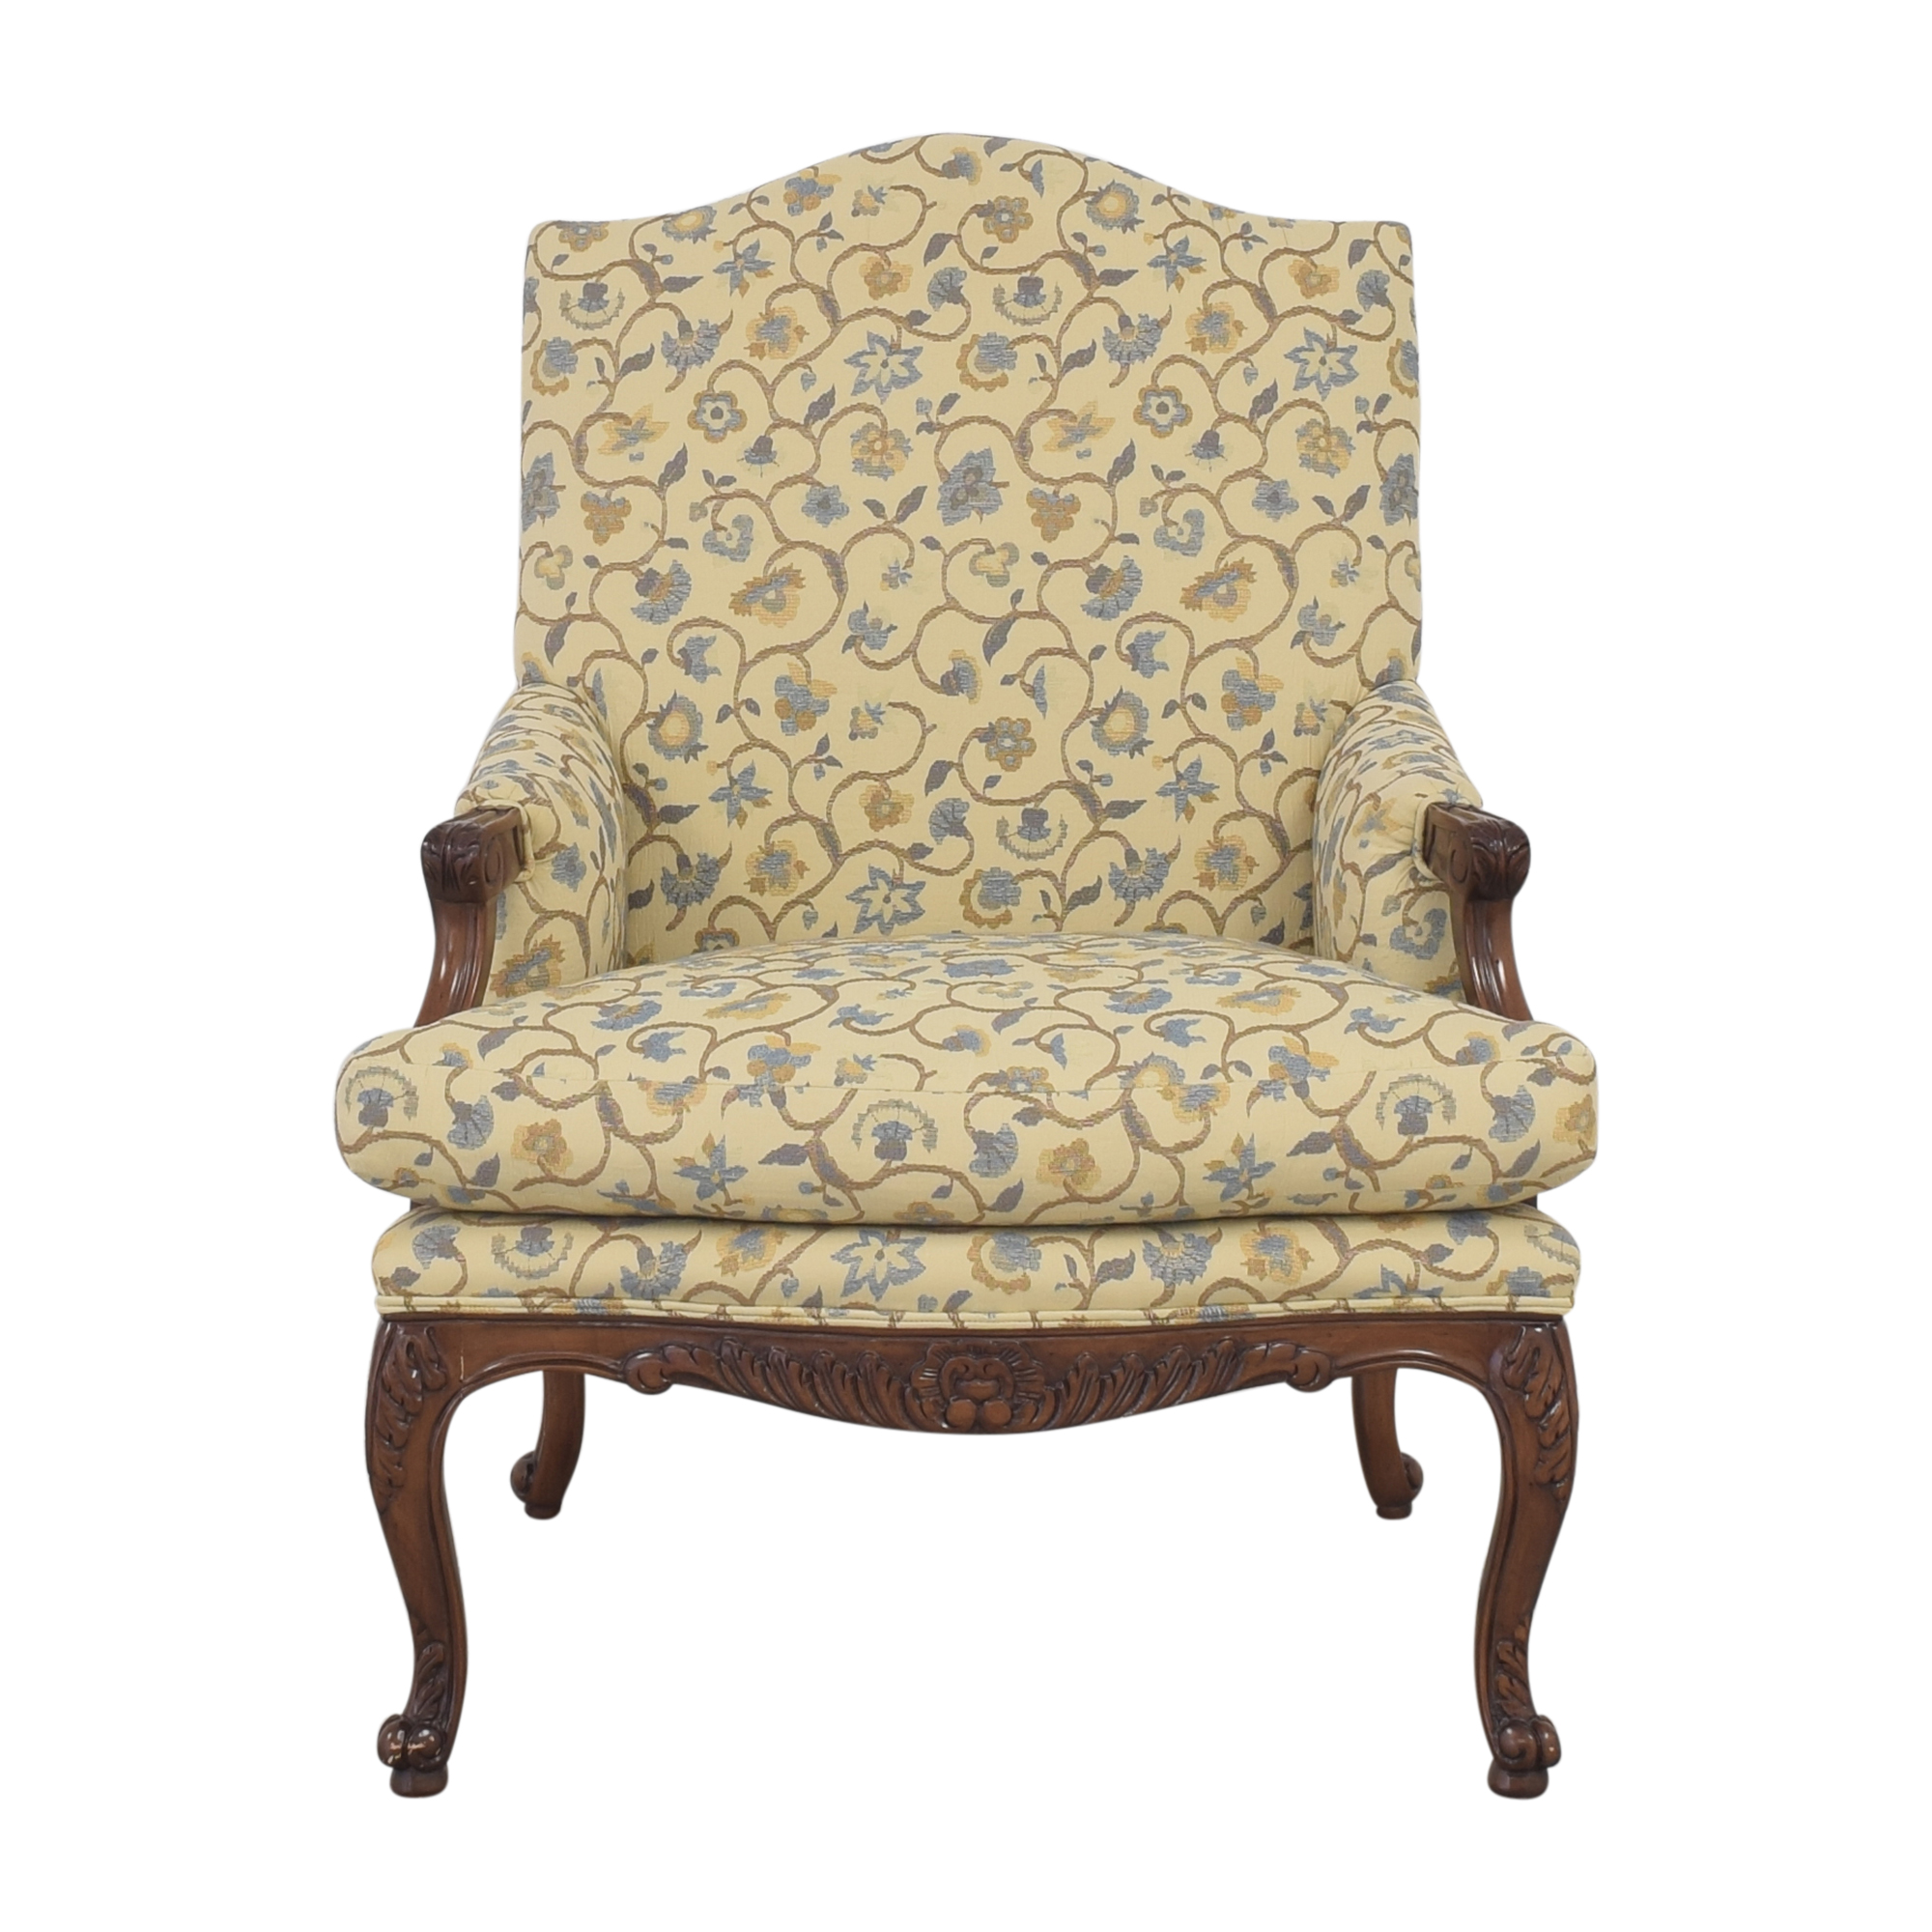 Kravet Upholstered Chair / Accent Chairs